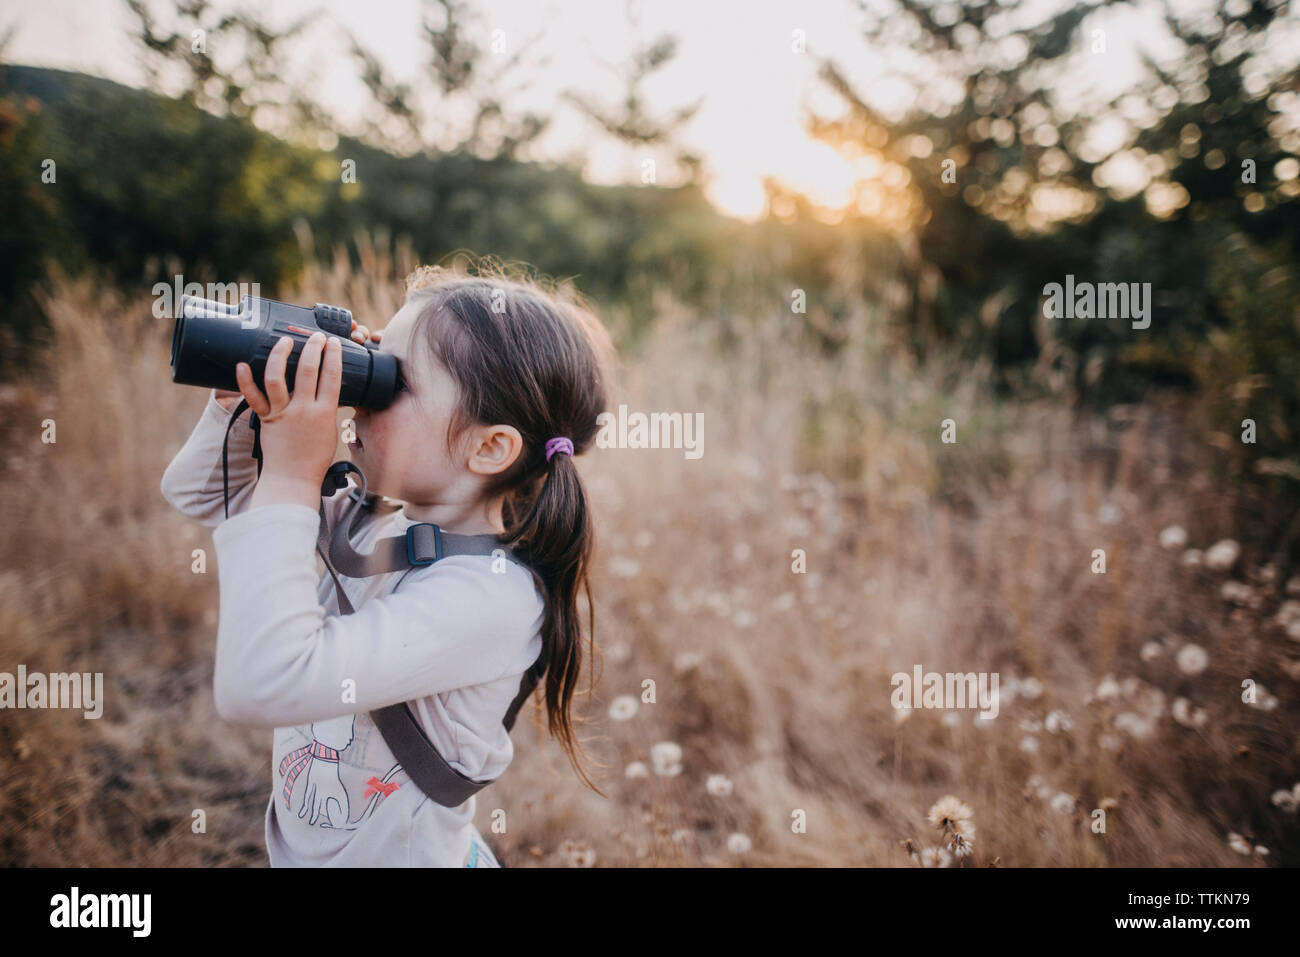 Side view of girl looking through binoculars while standing on field - Stock Image